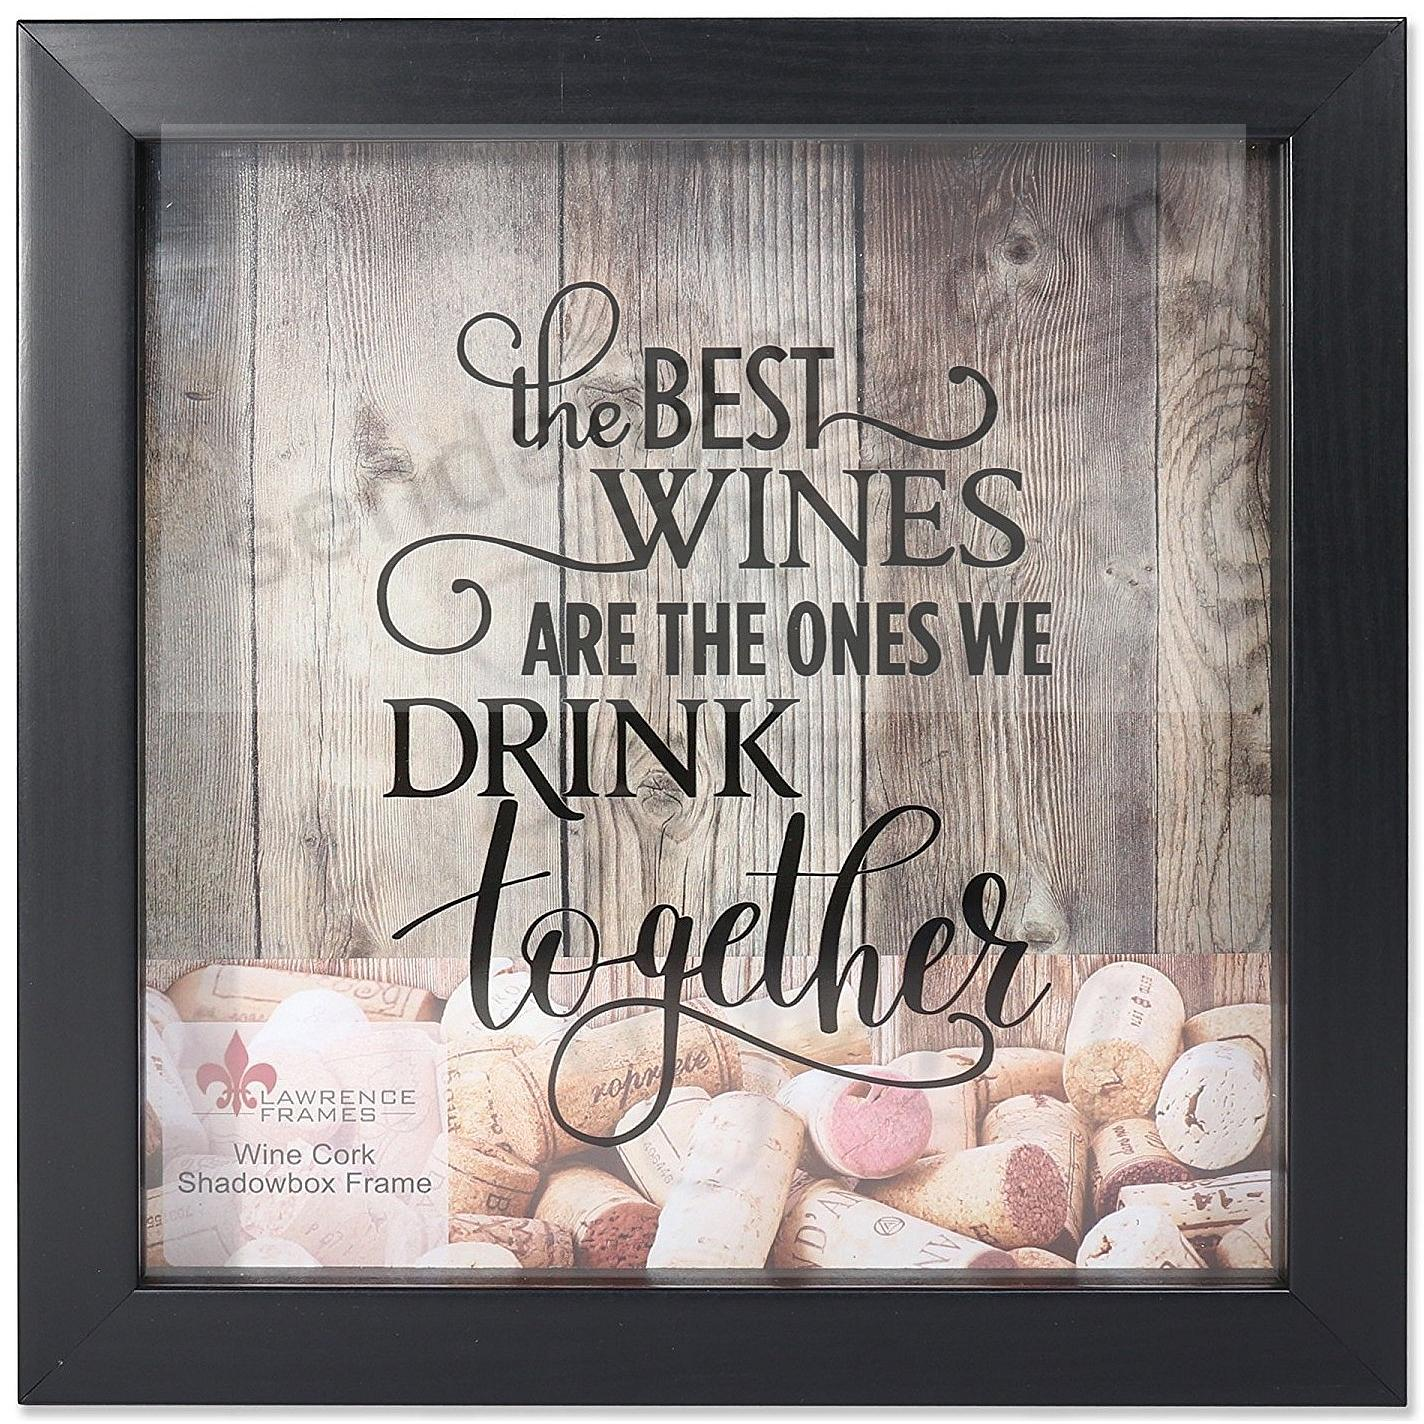 Wine Cork Holder Black Shadowbox 10X10 Frame By Lawrence